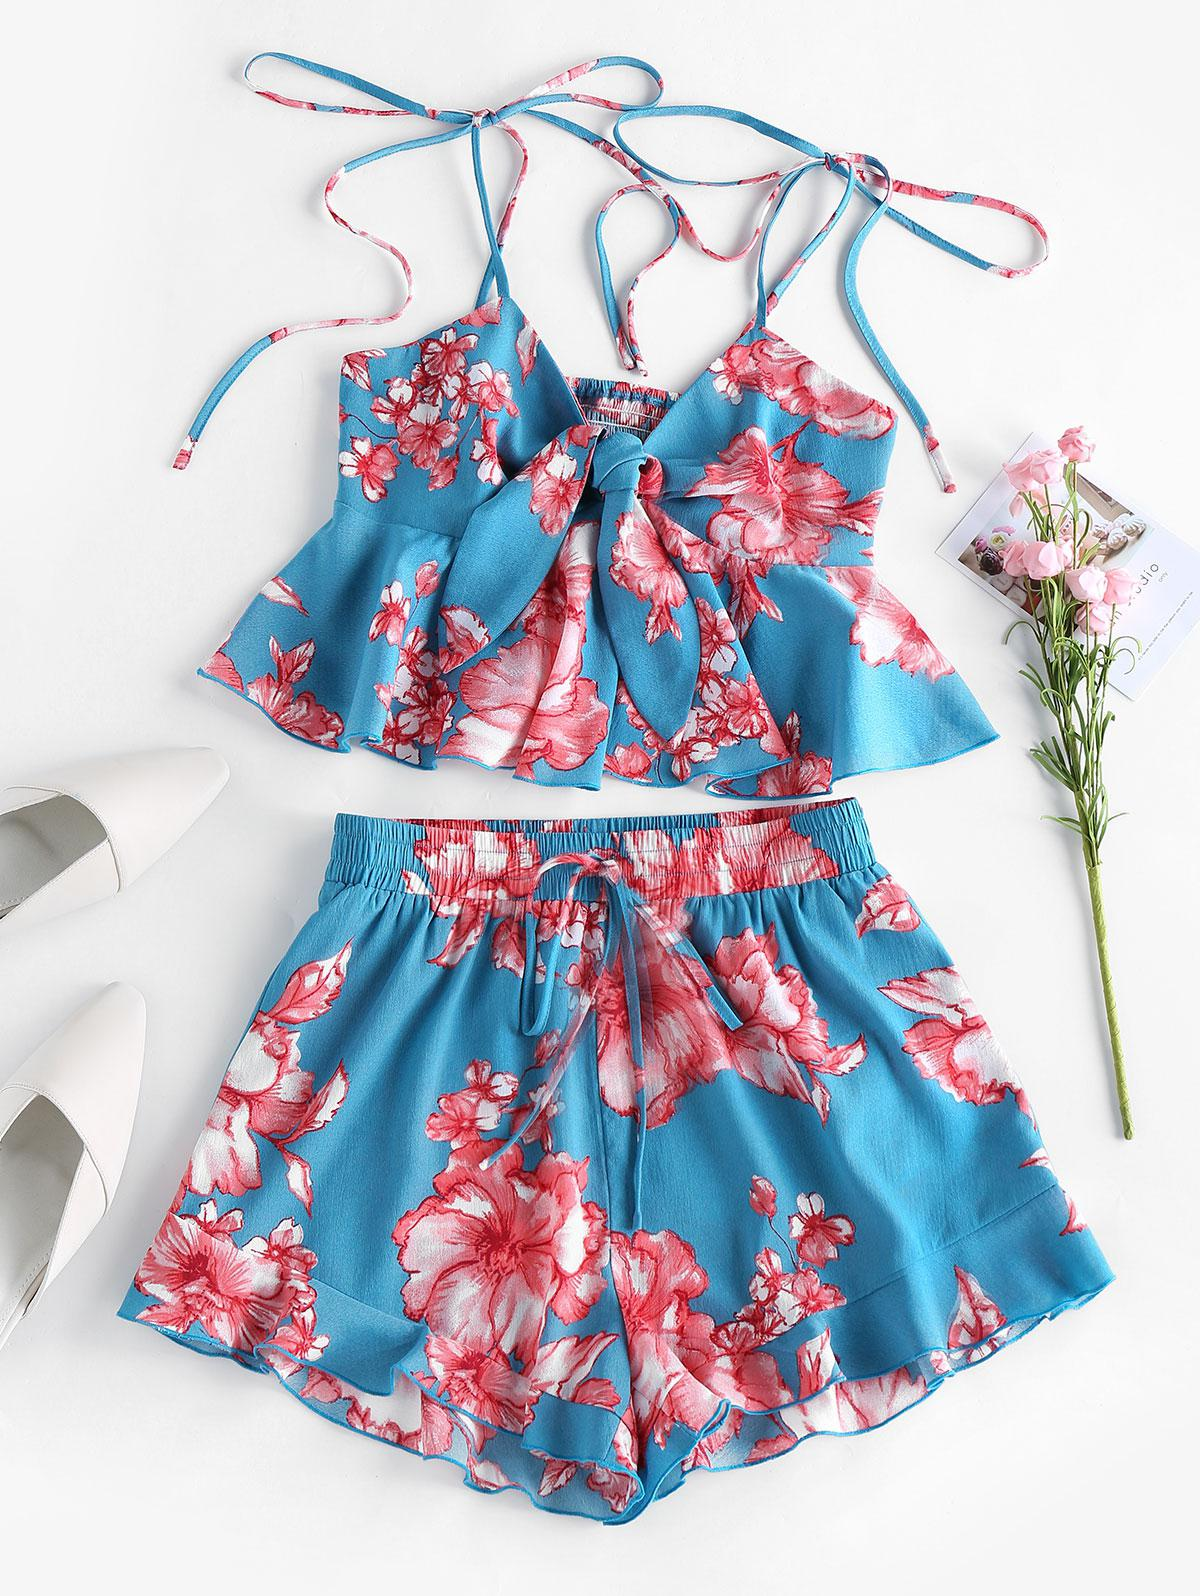 ZAFUL Tie Front Floral Print Two Piece Shorts Set